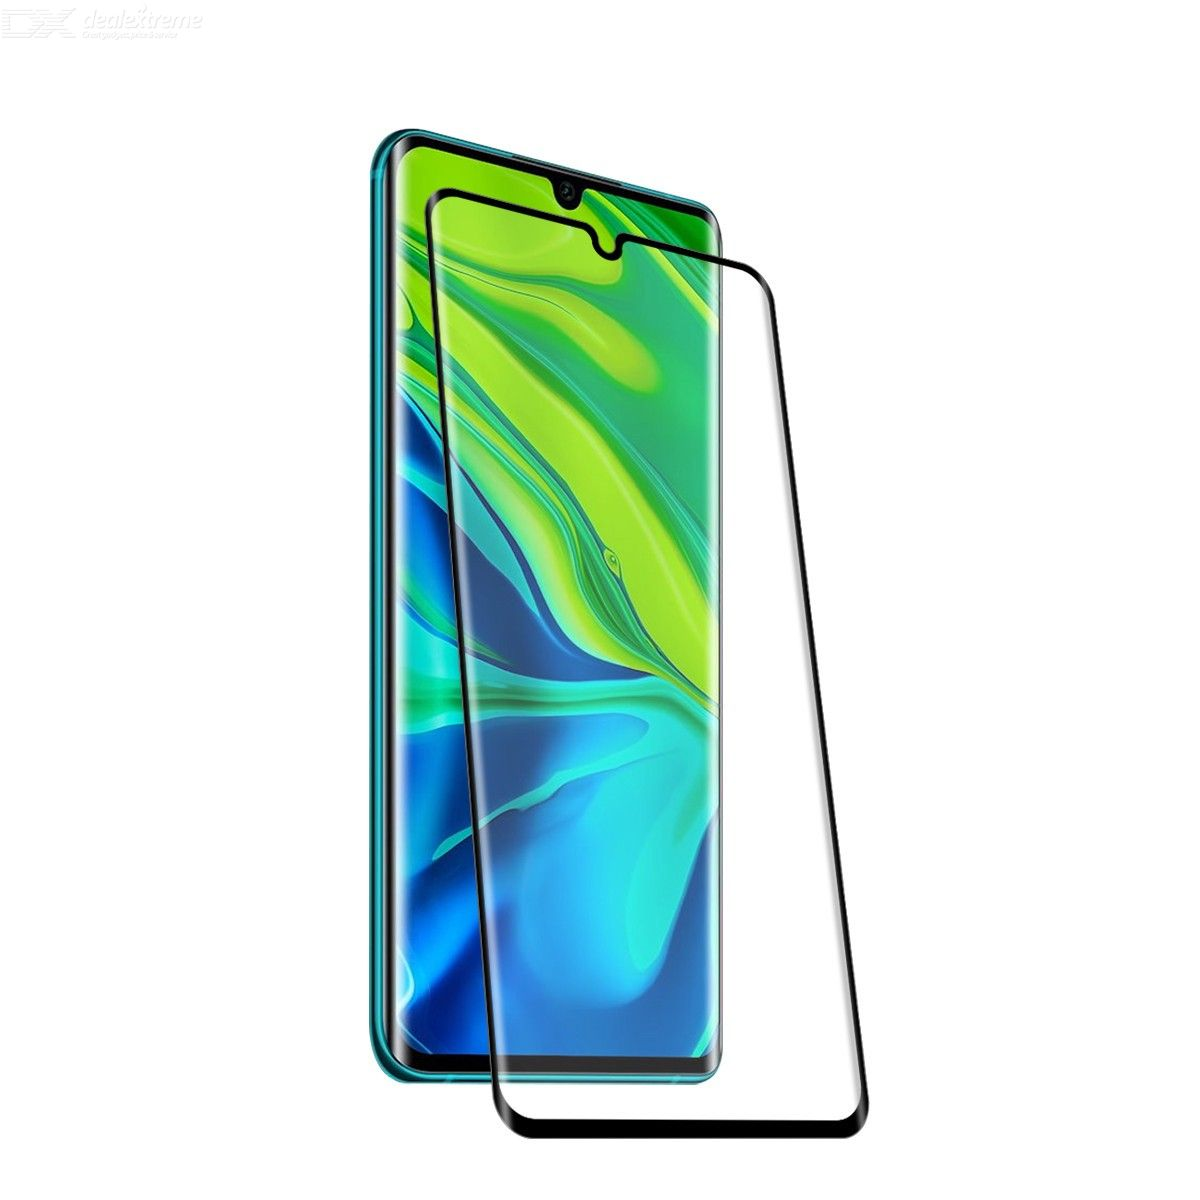 ENKAY Hat-Prince For XIAOMI Note 10 / Note 10 Pro / CC9 Pro 0.26mm 9H 3D Full Glue Explosion-proof Full Screen Curved Heat Ben